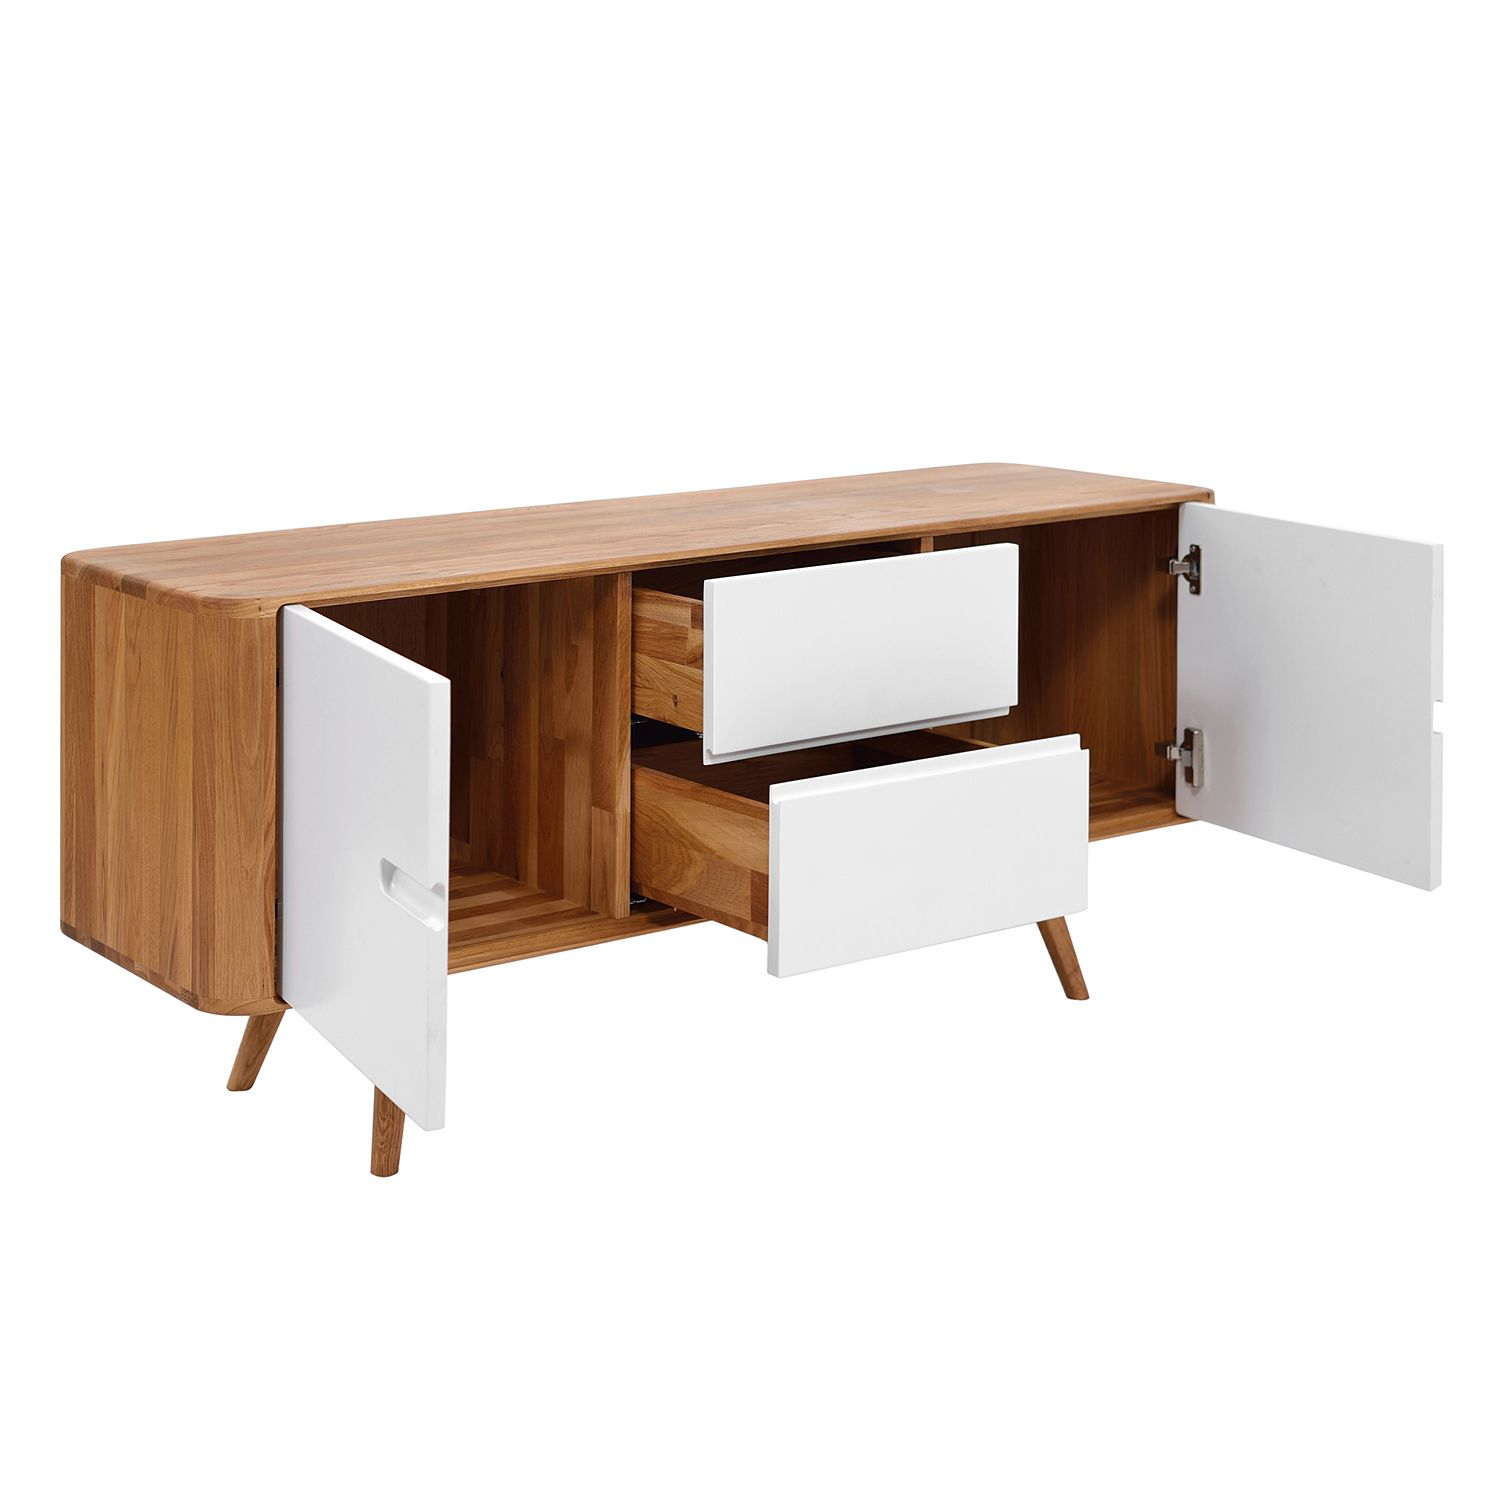 Sideboard wildeiche cool massivholz sideboard sascora aus for Sideboard wildeiche